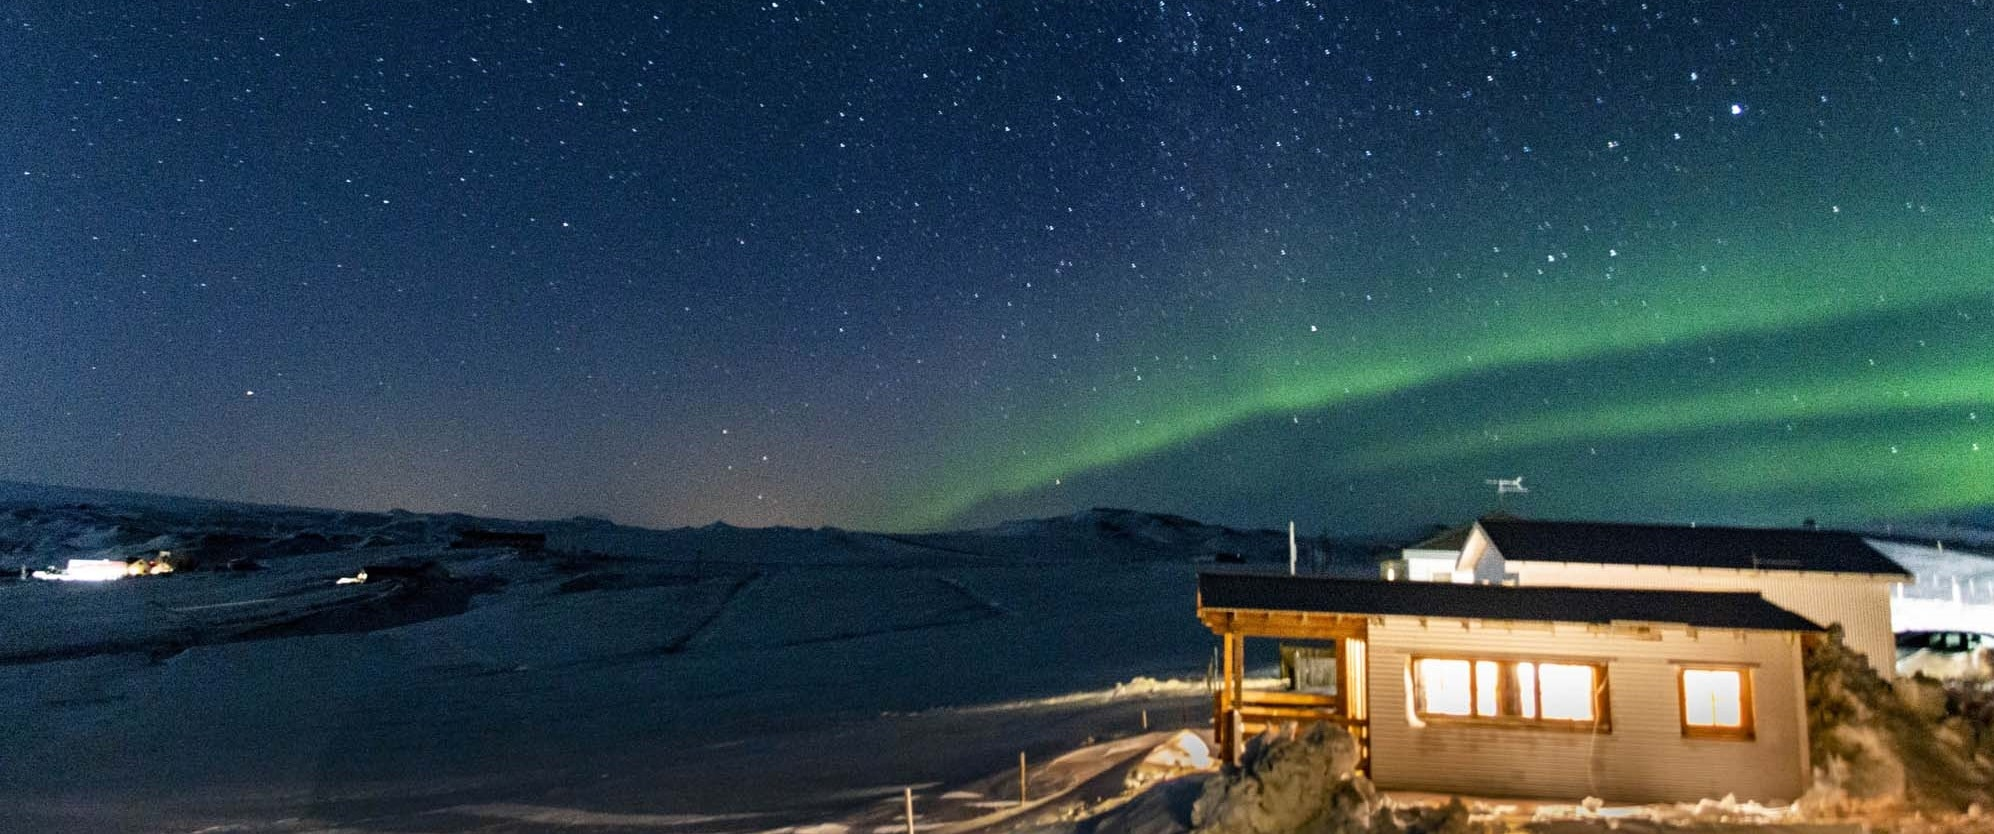 How To Find The Best Place To See Northern Lights In Iceland?